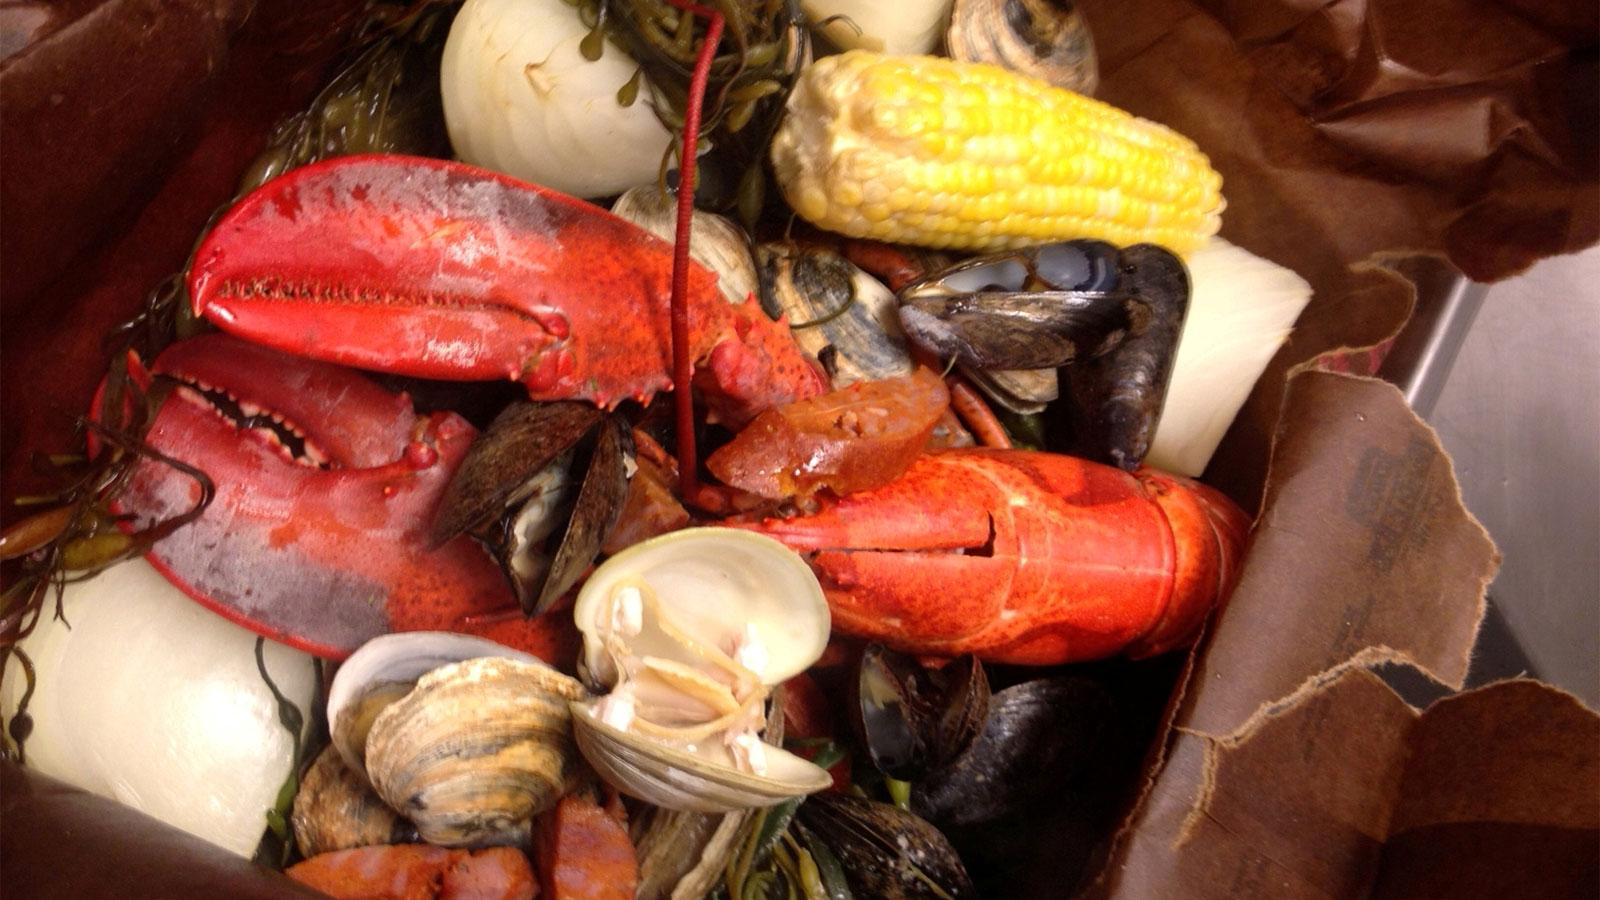 Lobster, clams, sausage, corn and potatoes bake together in a paper bag.